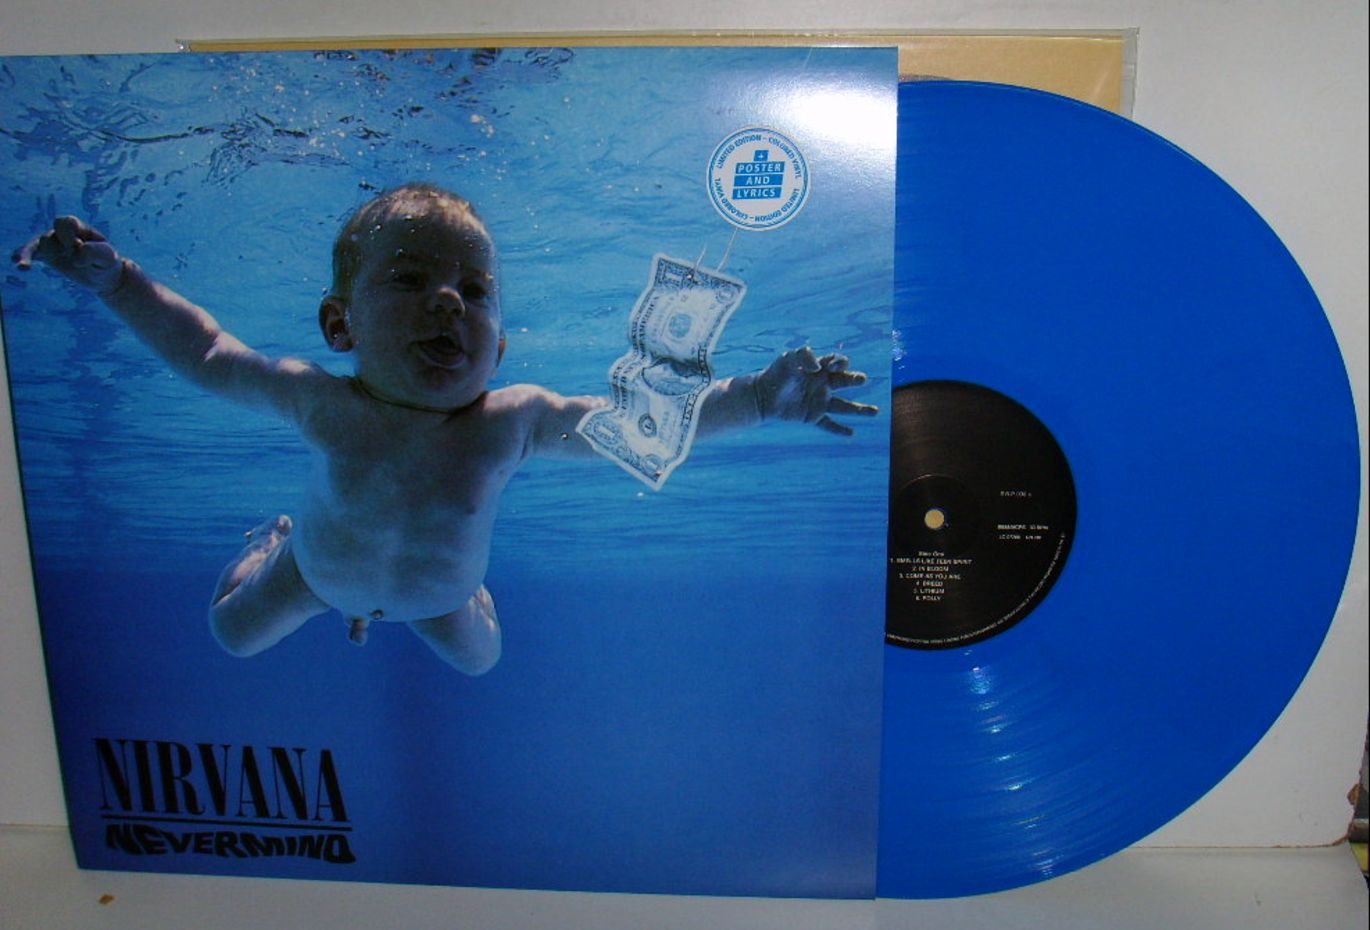 Buy vinyl artist% nevermind for sale